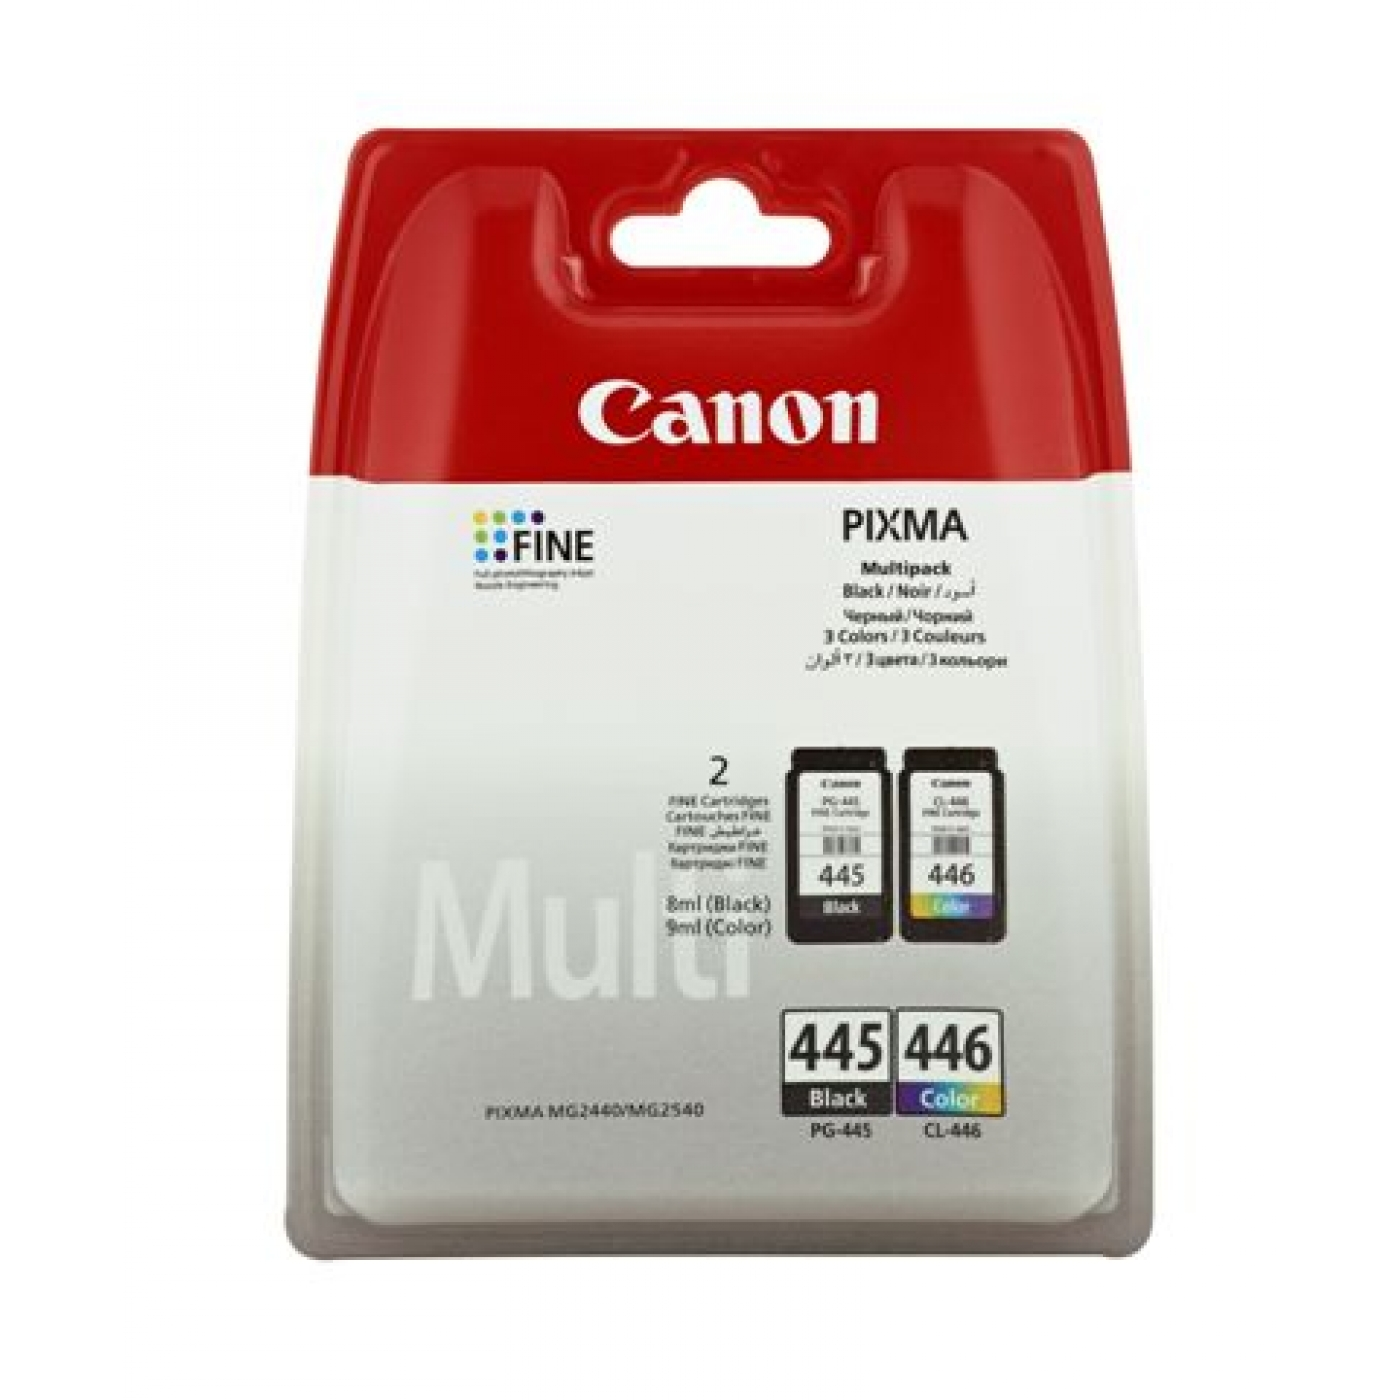 Canon PG-445/CL-446 Multipack Ink Cartridge - Black & Color